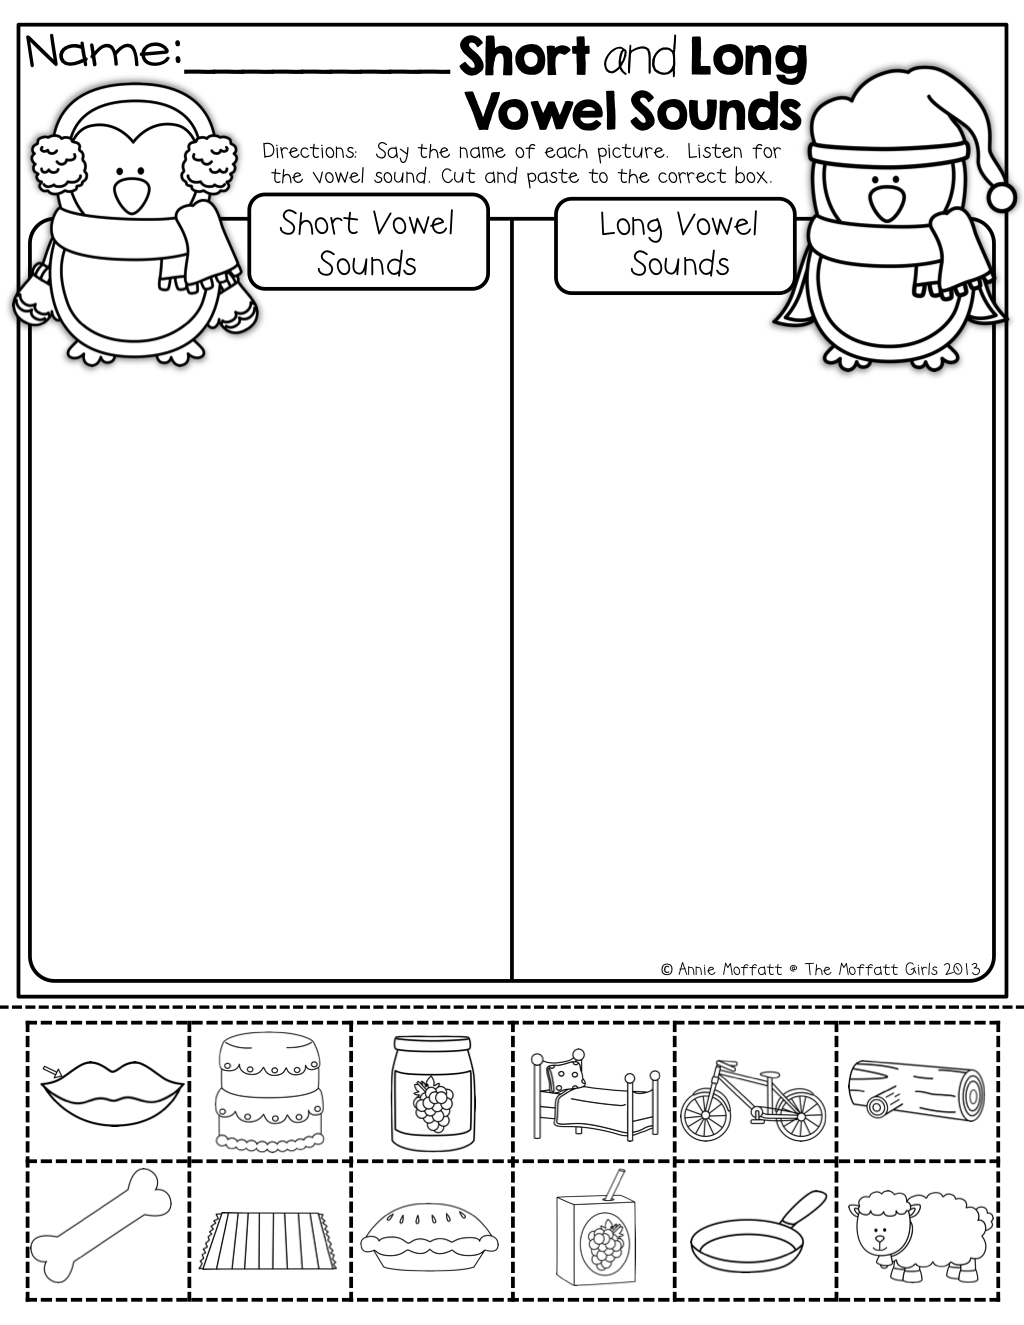 Workbooks short vowel a worksheets kindergarten : Short and Long vowel sounds … | Pinteres…